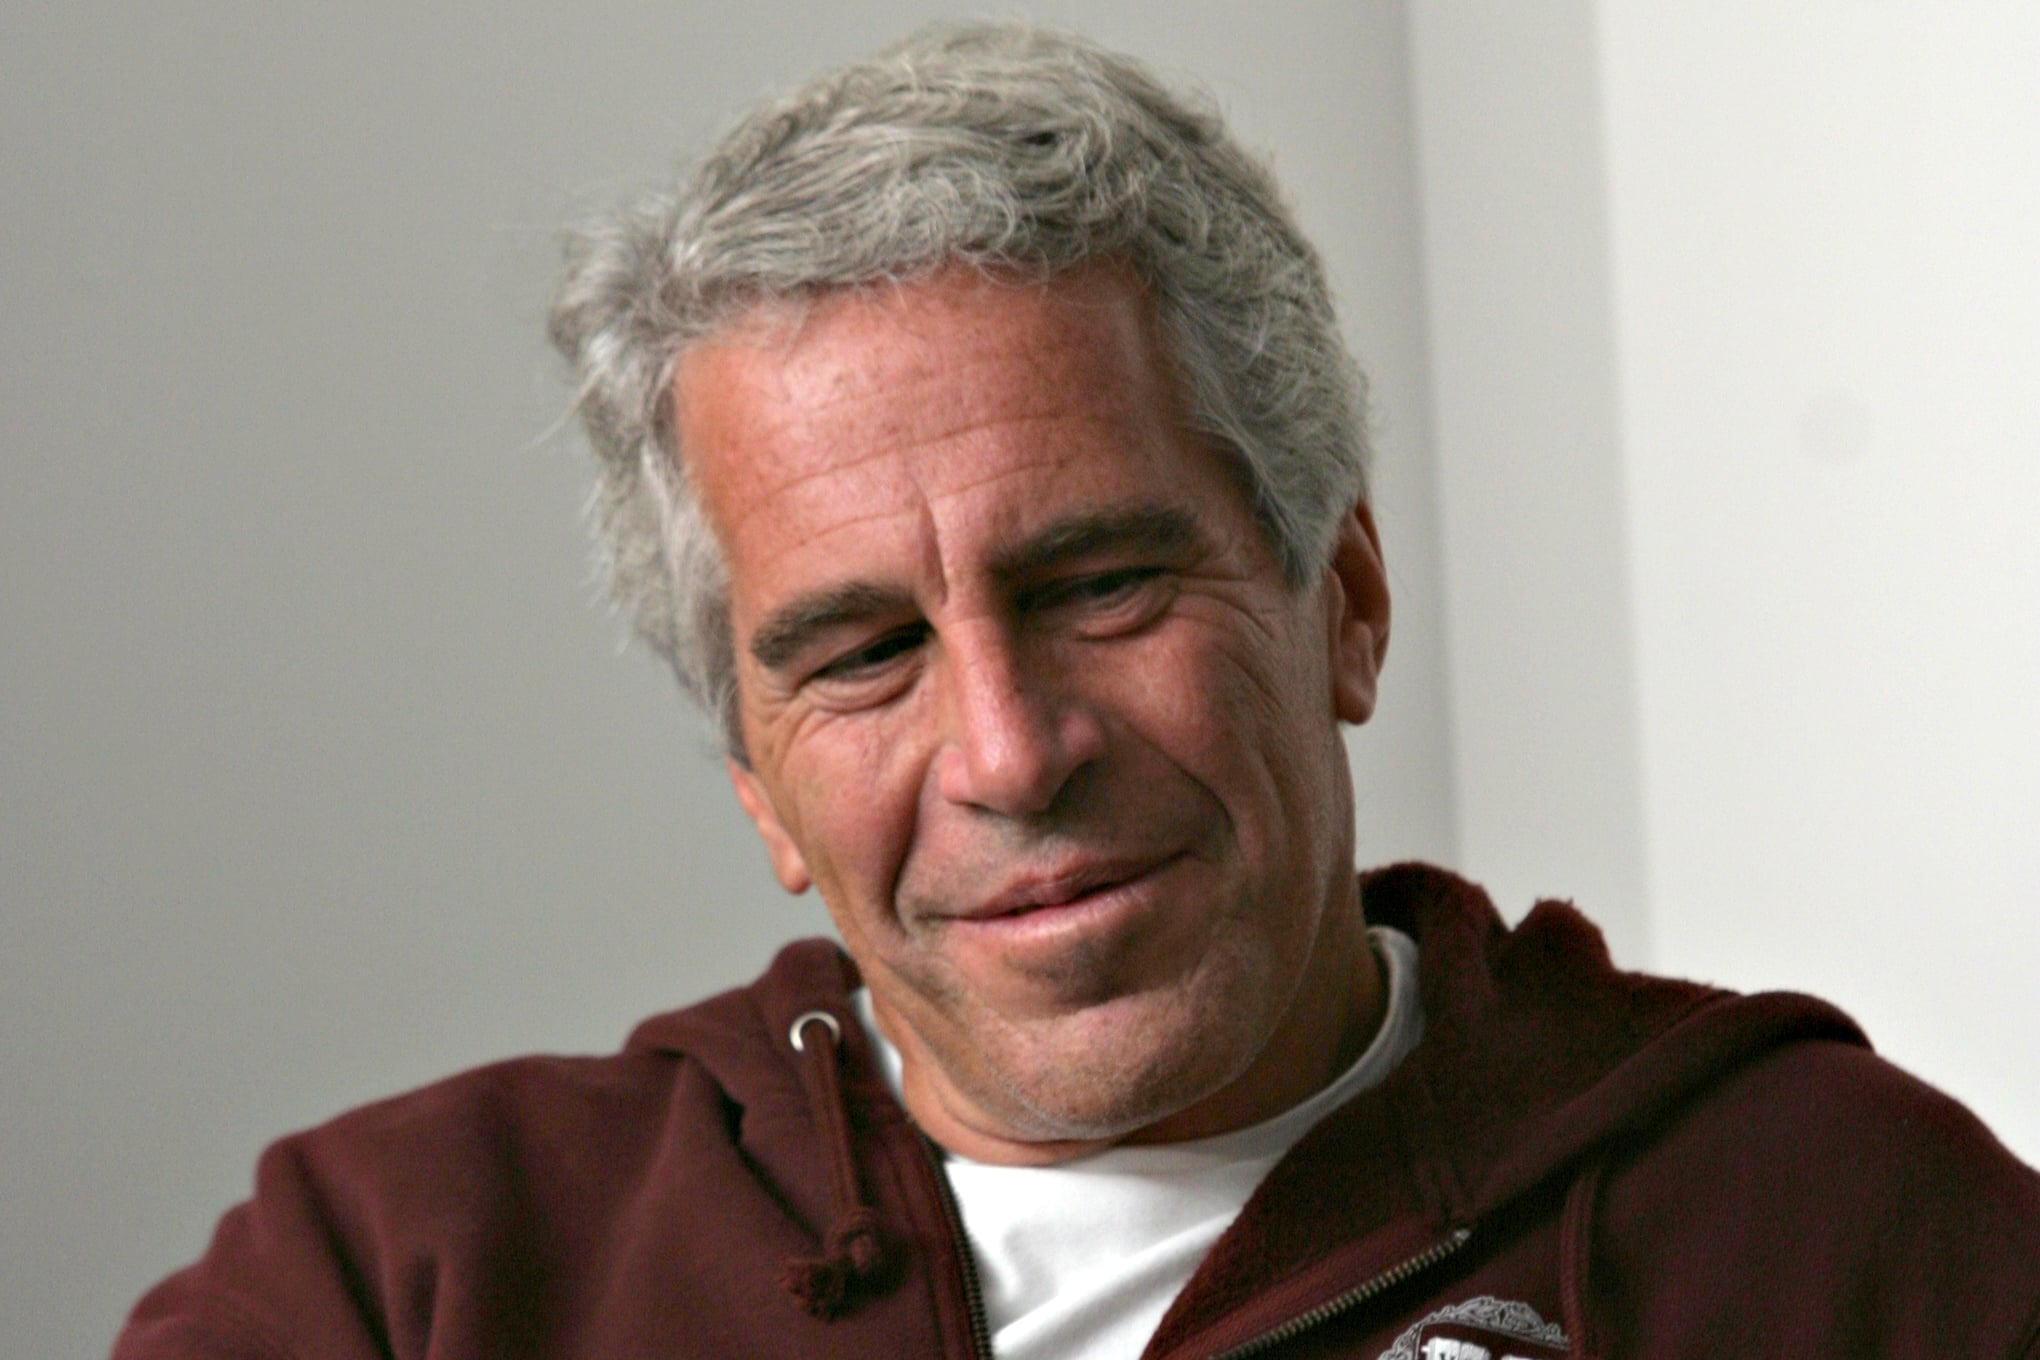 Billionaire Jeffrey Epstein in Cambridge, MA on 9/8/04. Epstein is associated with several prominent people, including politicians, actors and scientists. Epstein was convicted of sex with an underage woman. (Photo by Rick Friedman / Rick Friedman Photography / Corbis via Getty Images)